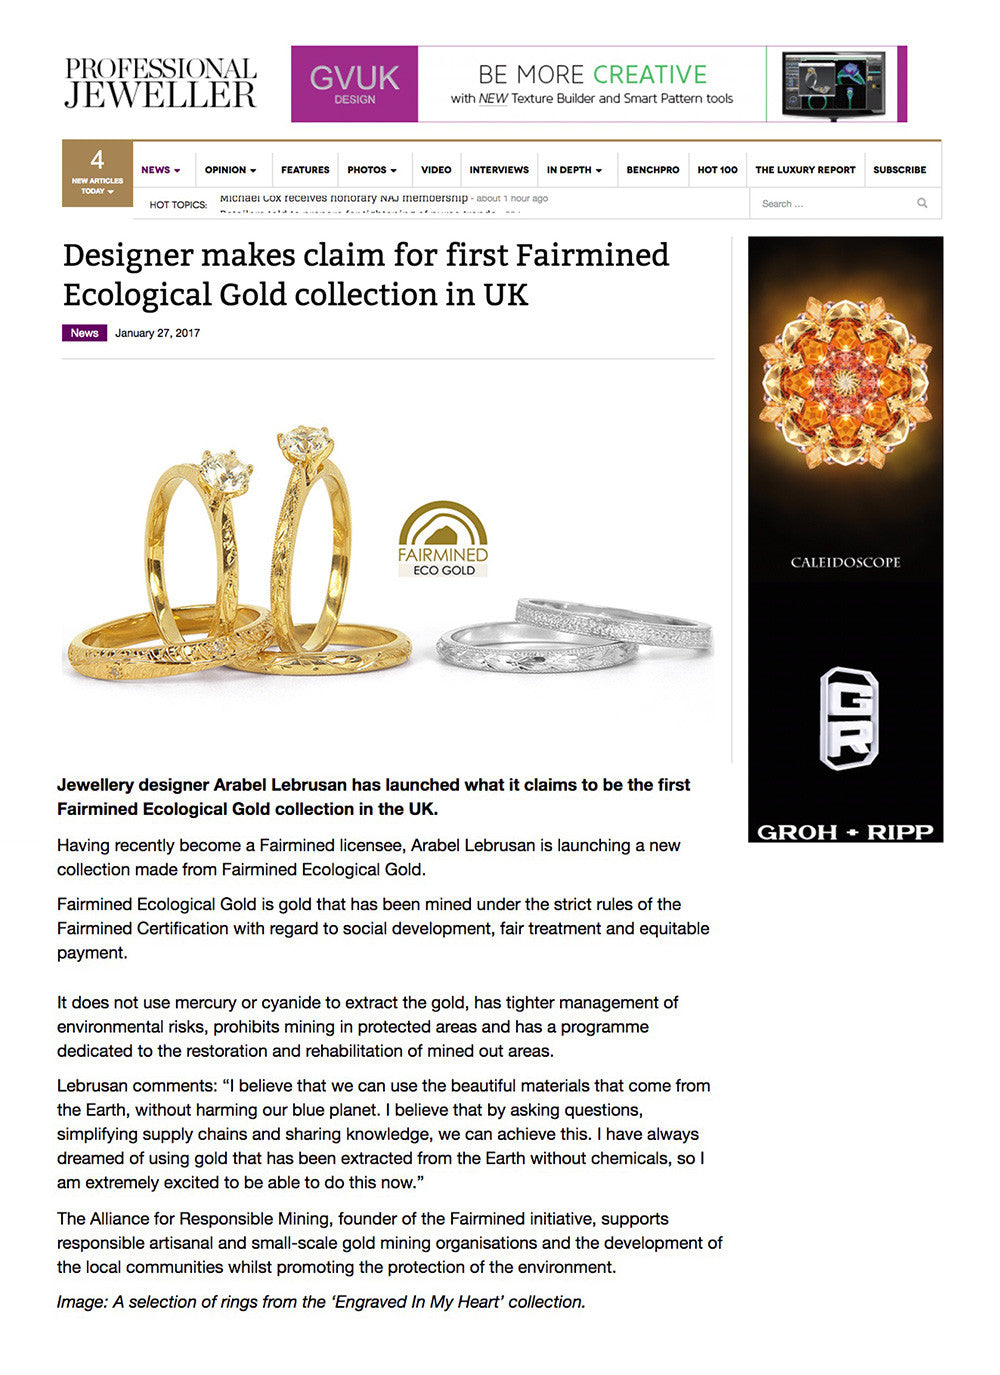 Arabel Lebrusan at Professional Jeweller with Ecological Gold Collection